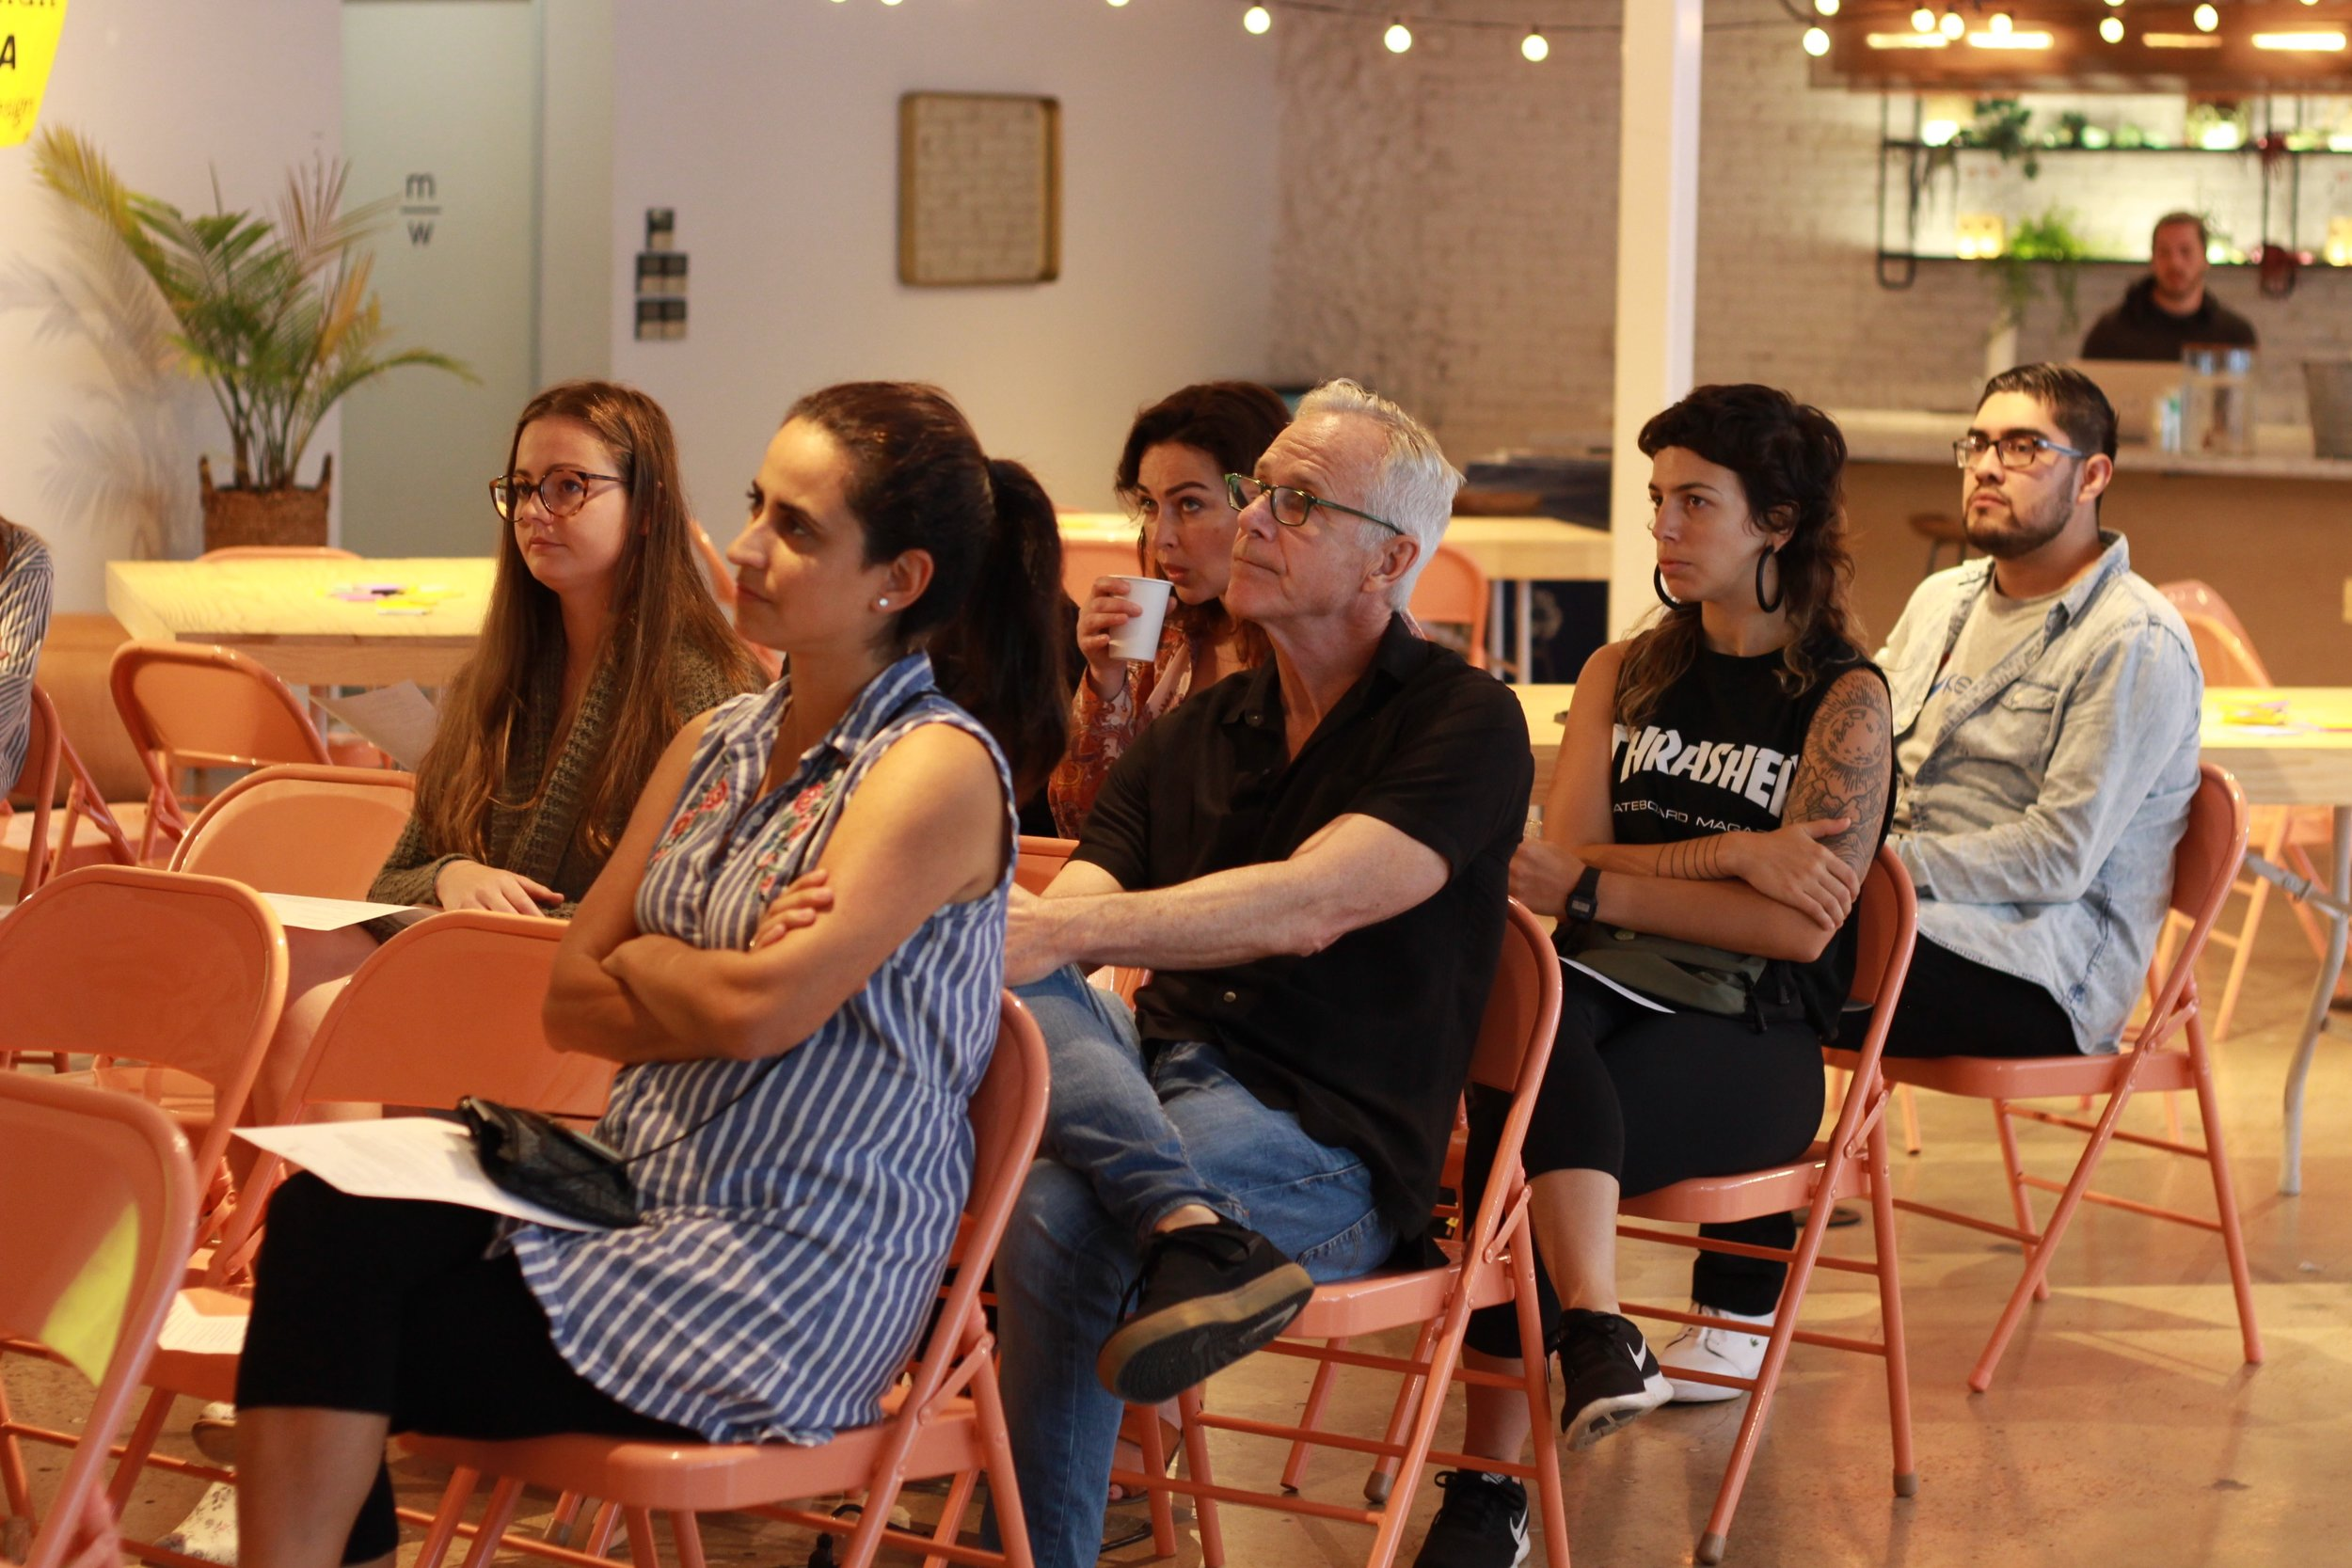 The crowd attentively listens and participates in the discussion.